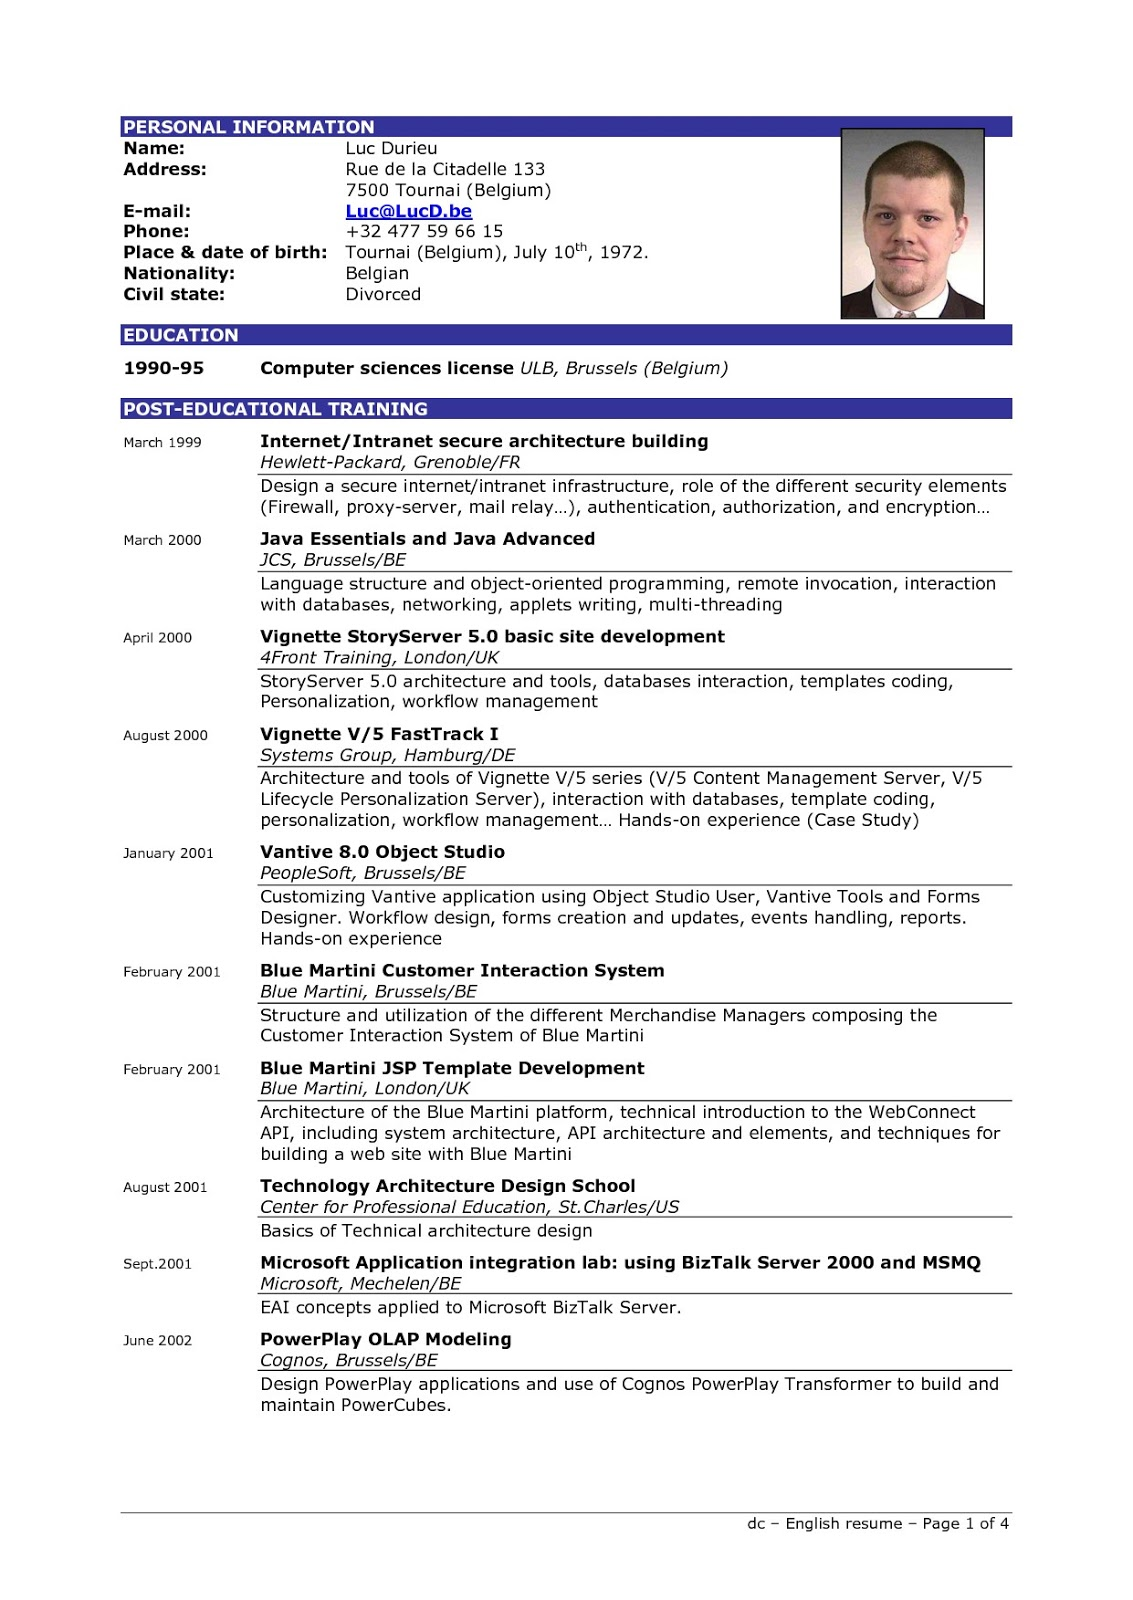 samples of great resumes - Professional Resume Sample